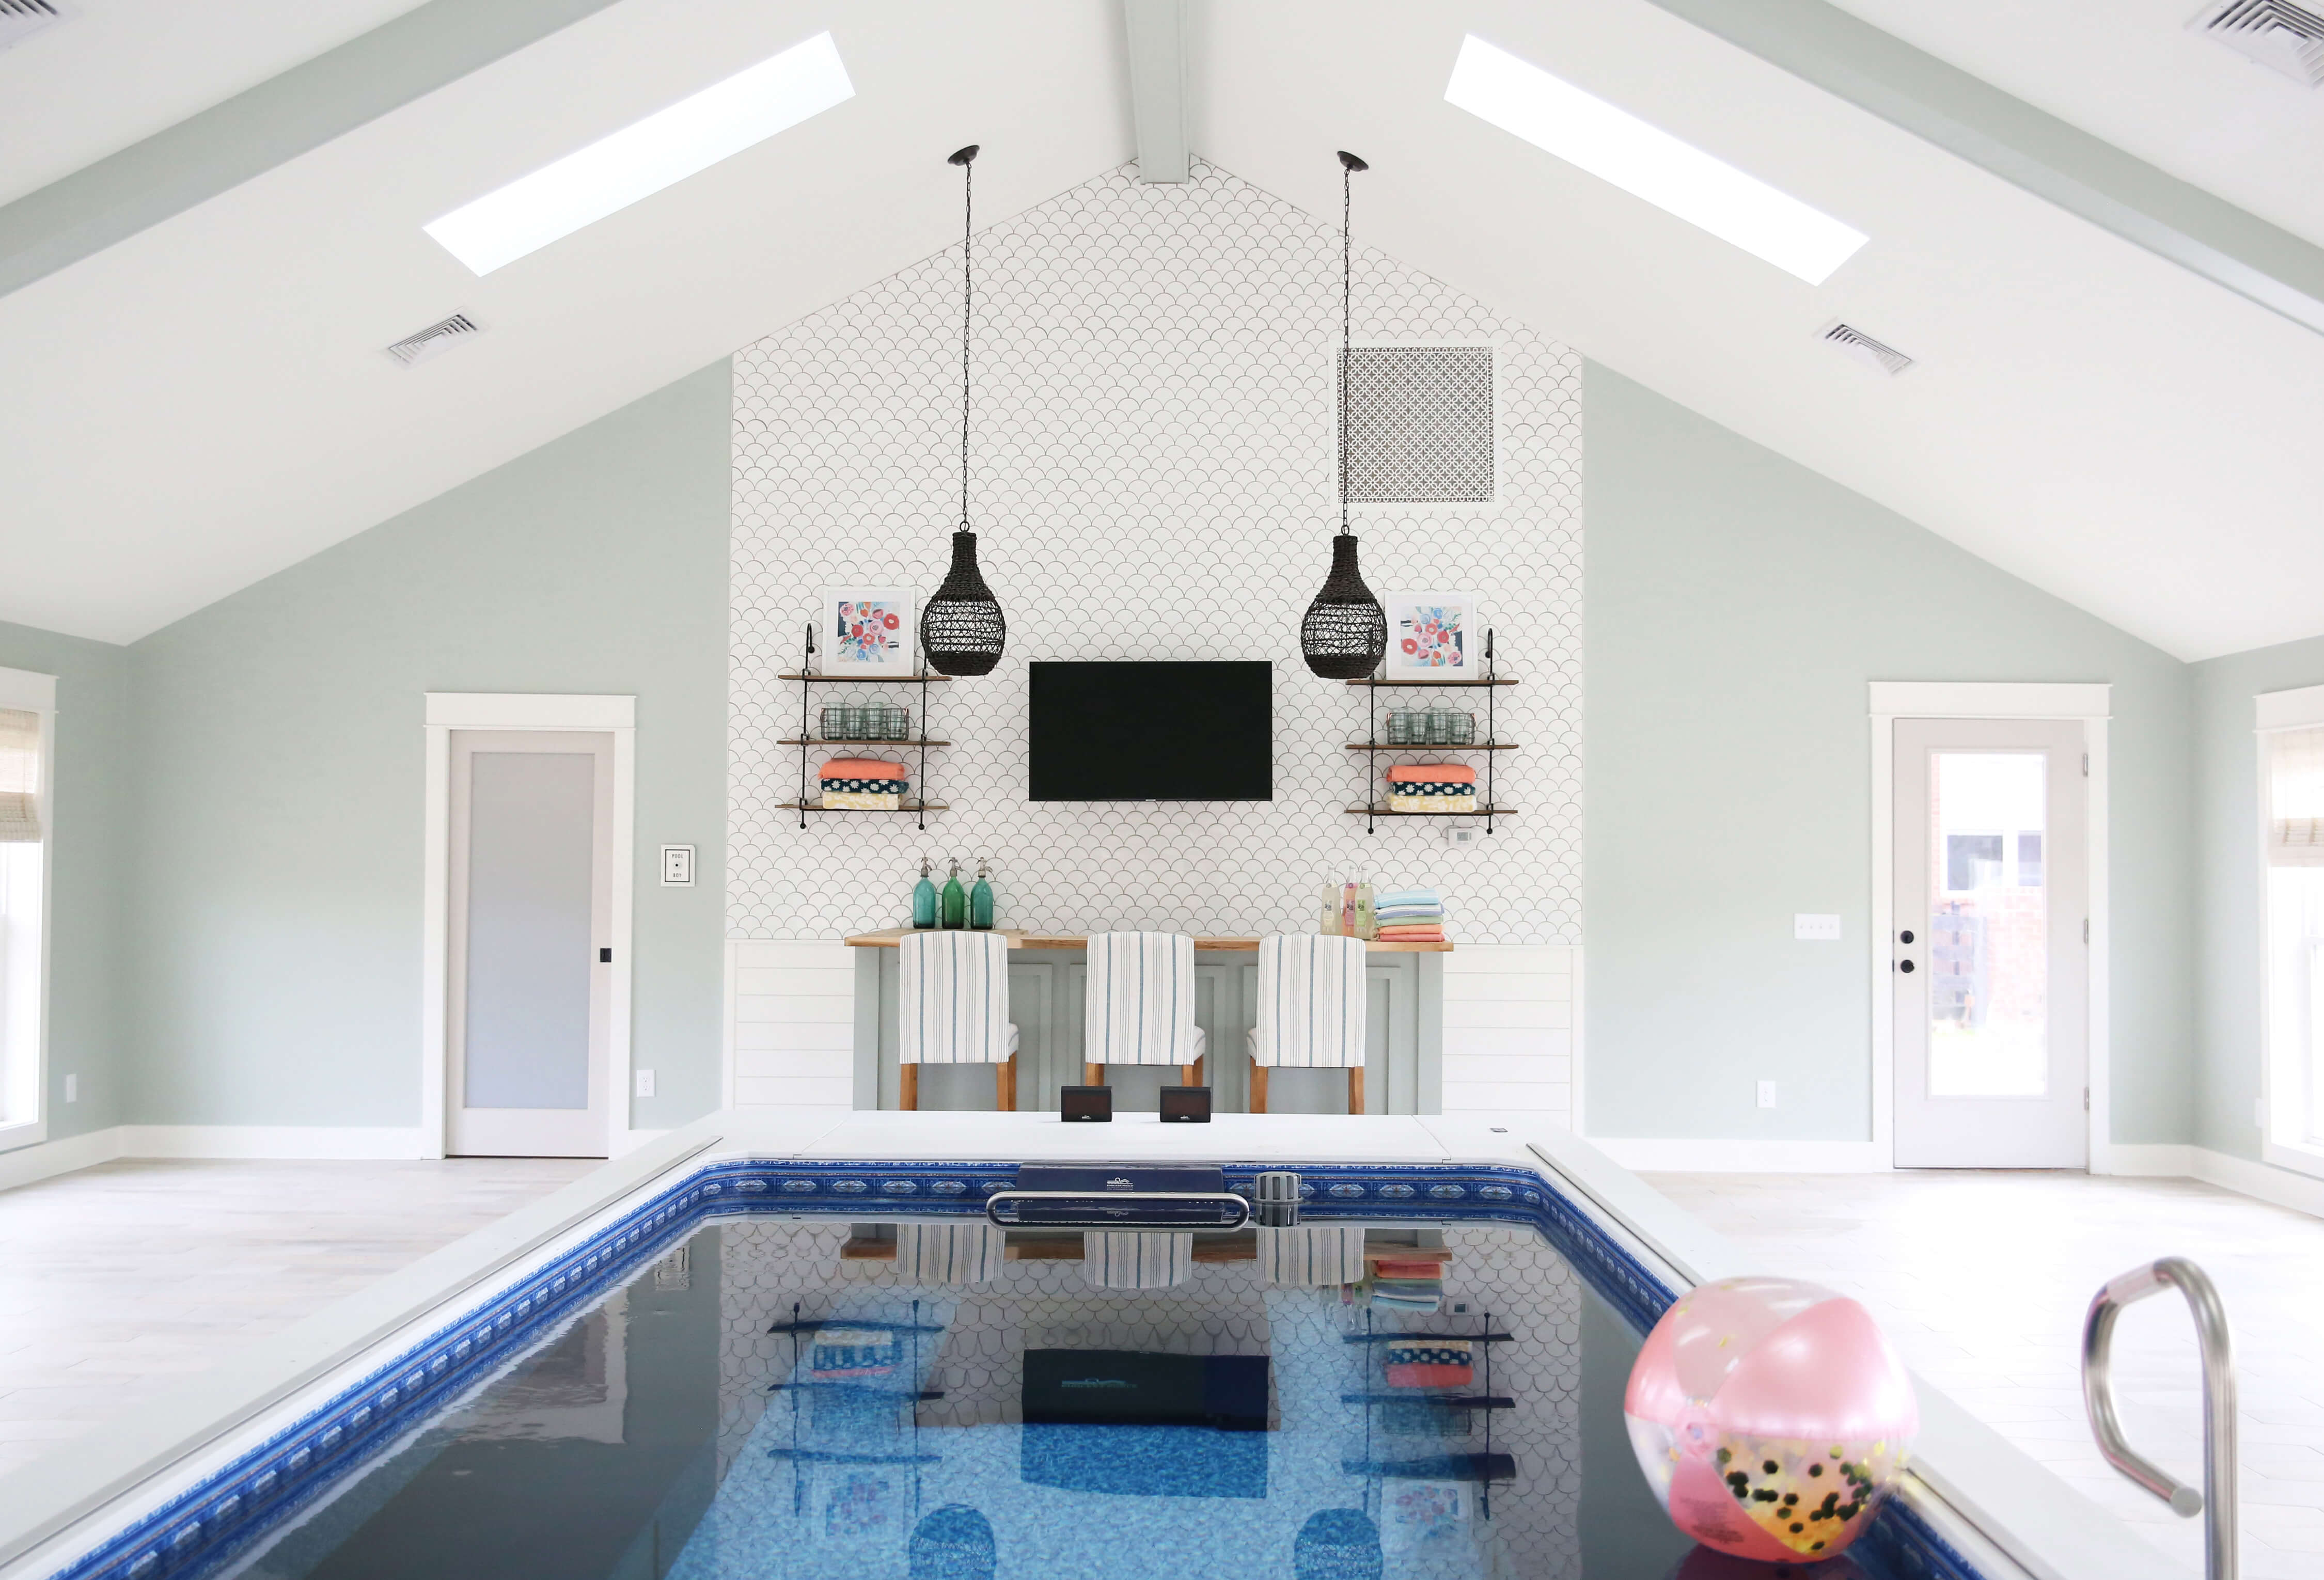 a pool house for an Elite Endless Pool in a Nashville suburb